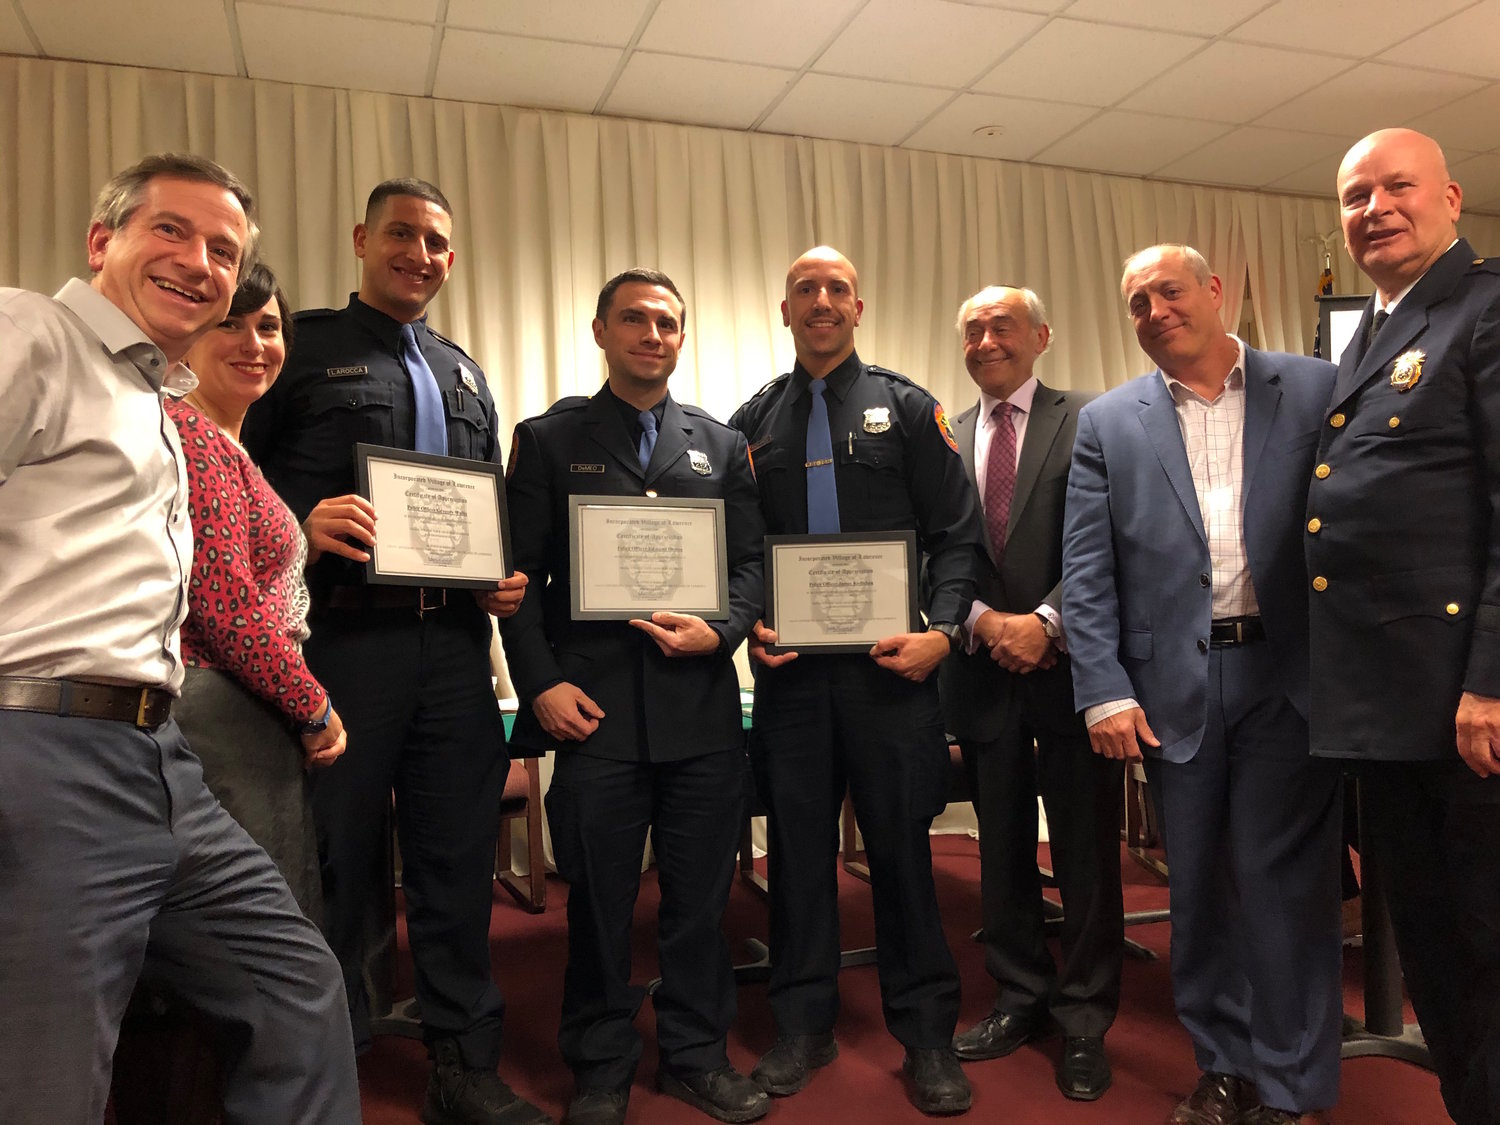 Four Nassau County 4th Precinct officers were honored at the Nov. 14 Lawrence village meeting. From left were Trustees Uri Kaufman and Syma Diamond,  officers James LaRocca, Edmund Demeo and James Kyriakoy, Mayor Alex Edelman, Trustee Daniel Goldstein and 4th Precinct Commanding Officer Insp. Joseph Barbieri.